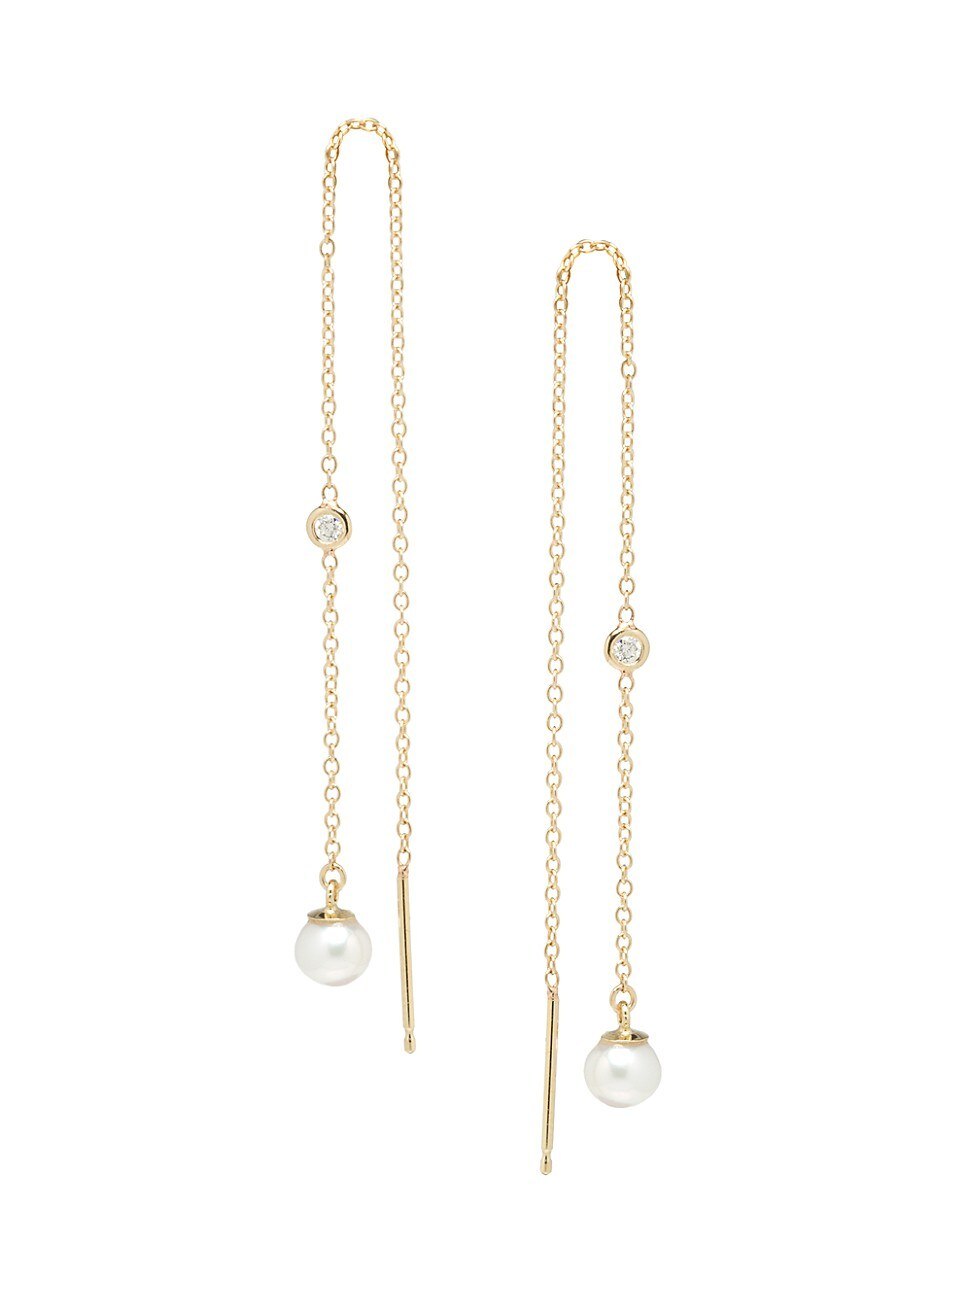 Zoë Chicco Women's 14k Yellow Gold, 4mm Pearl & Diamond Long Threader Earrings